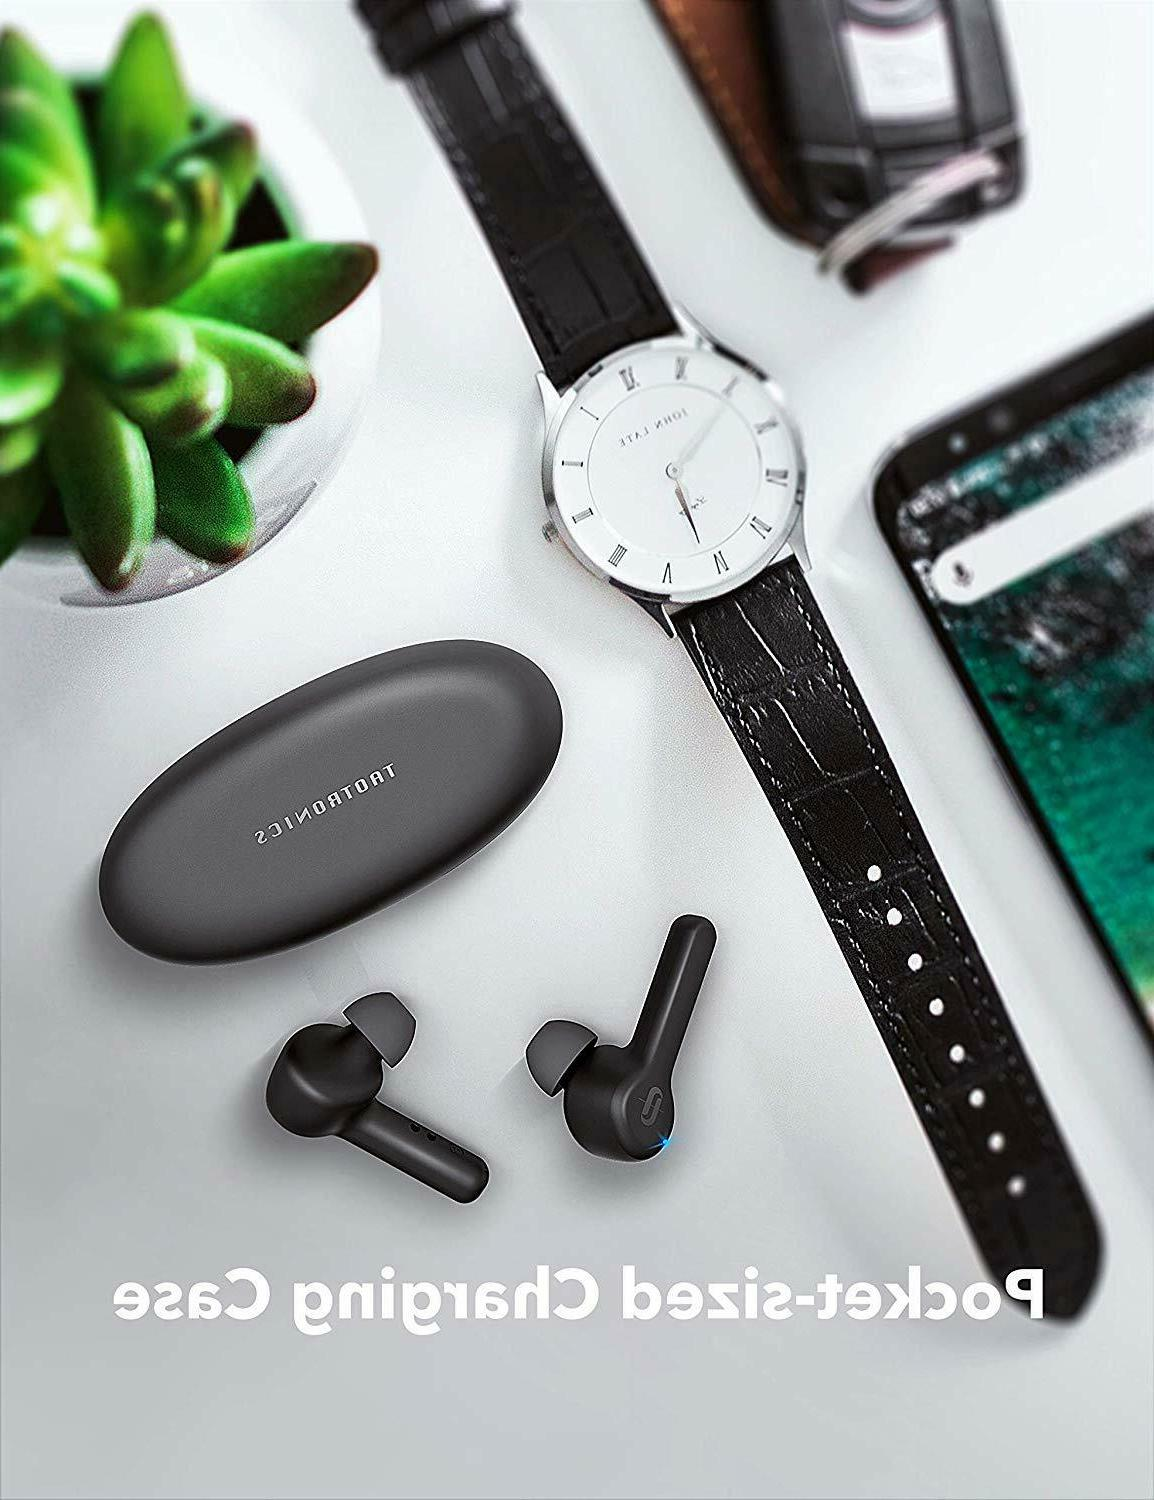 TaoTronics Bluetooth 5.0 TWS with case